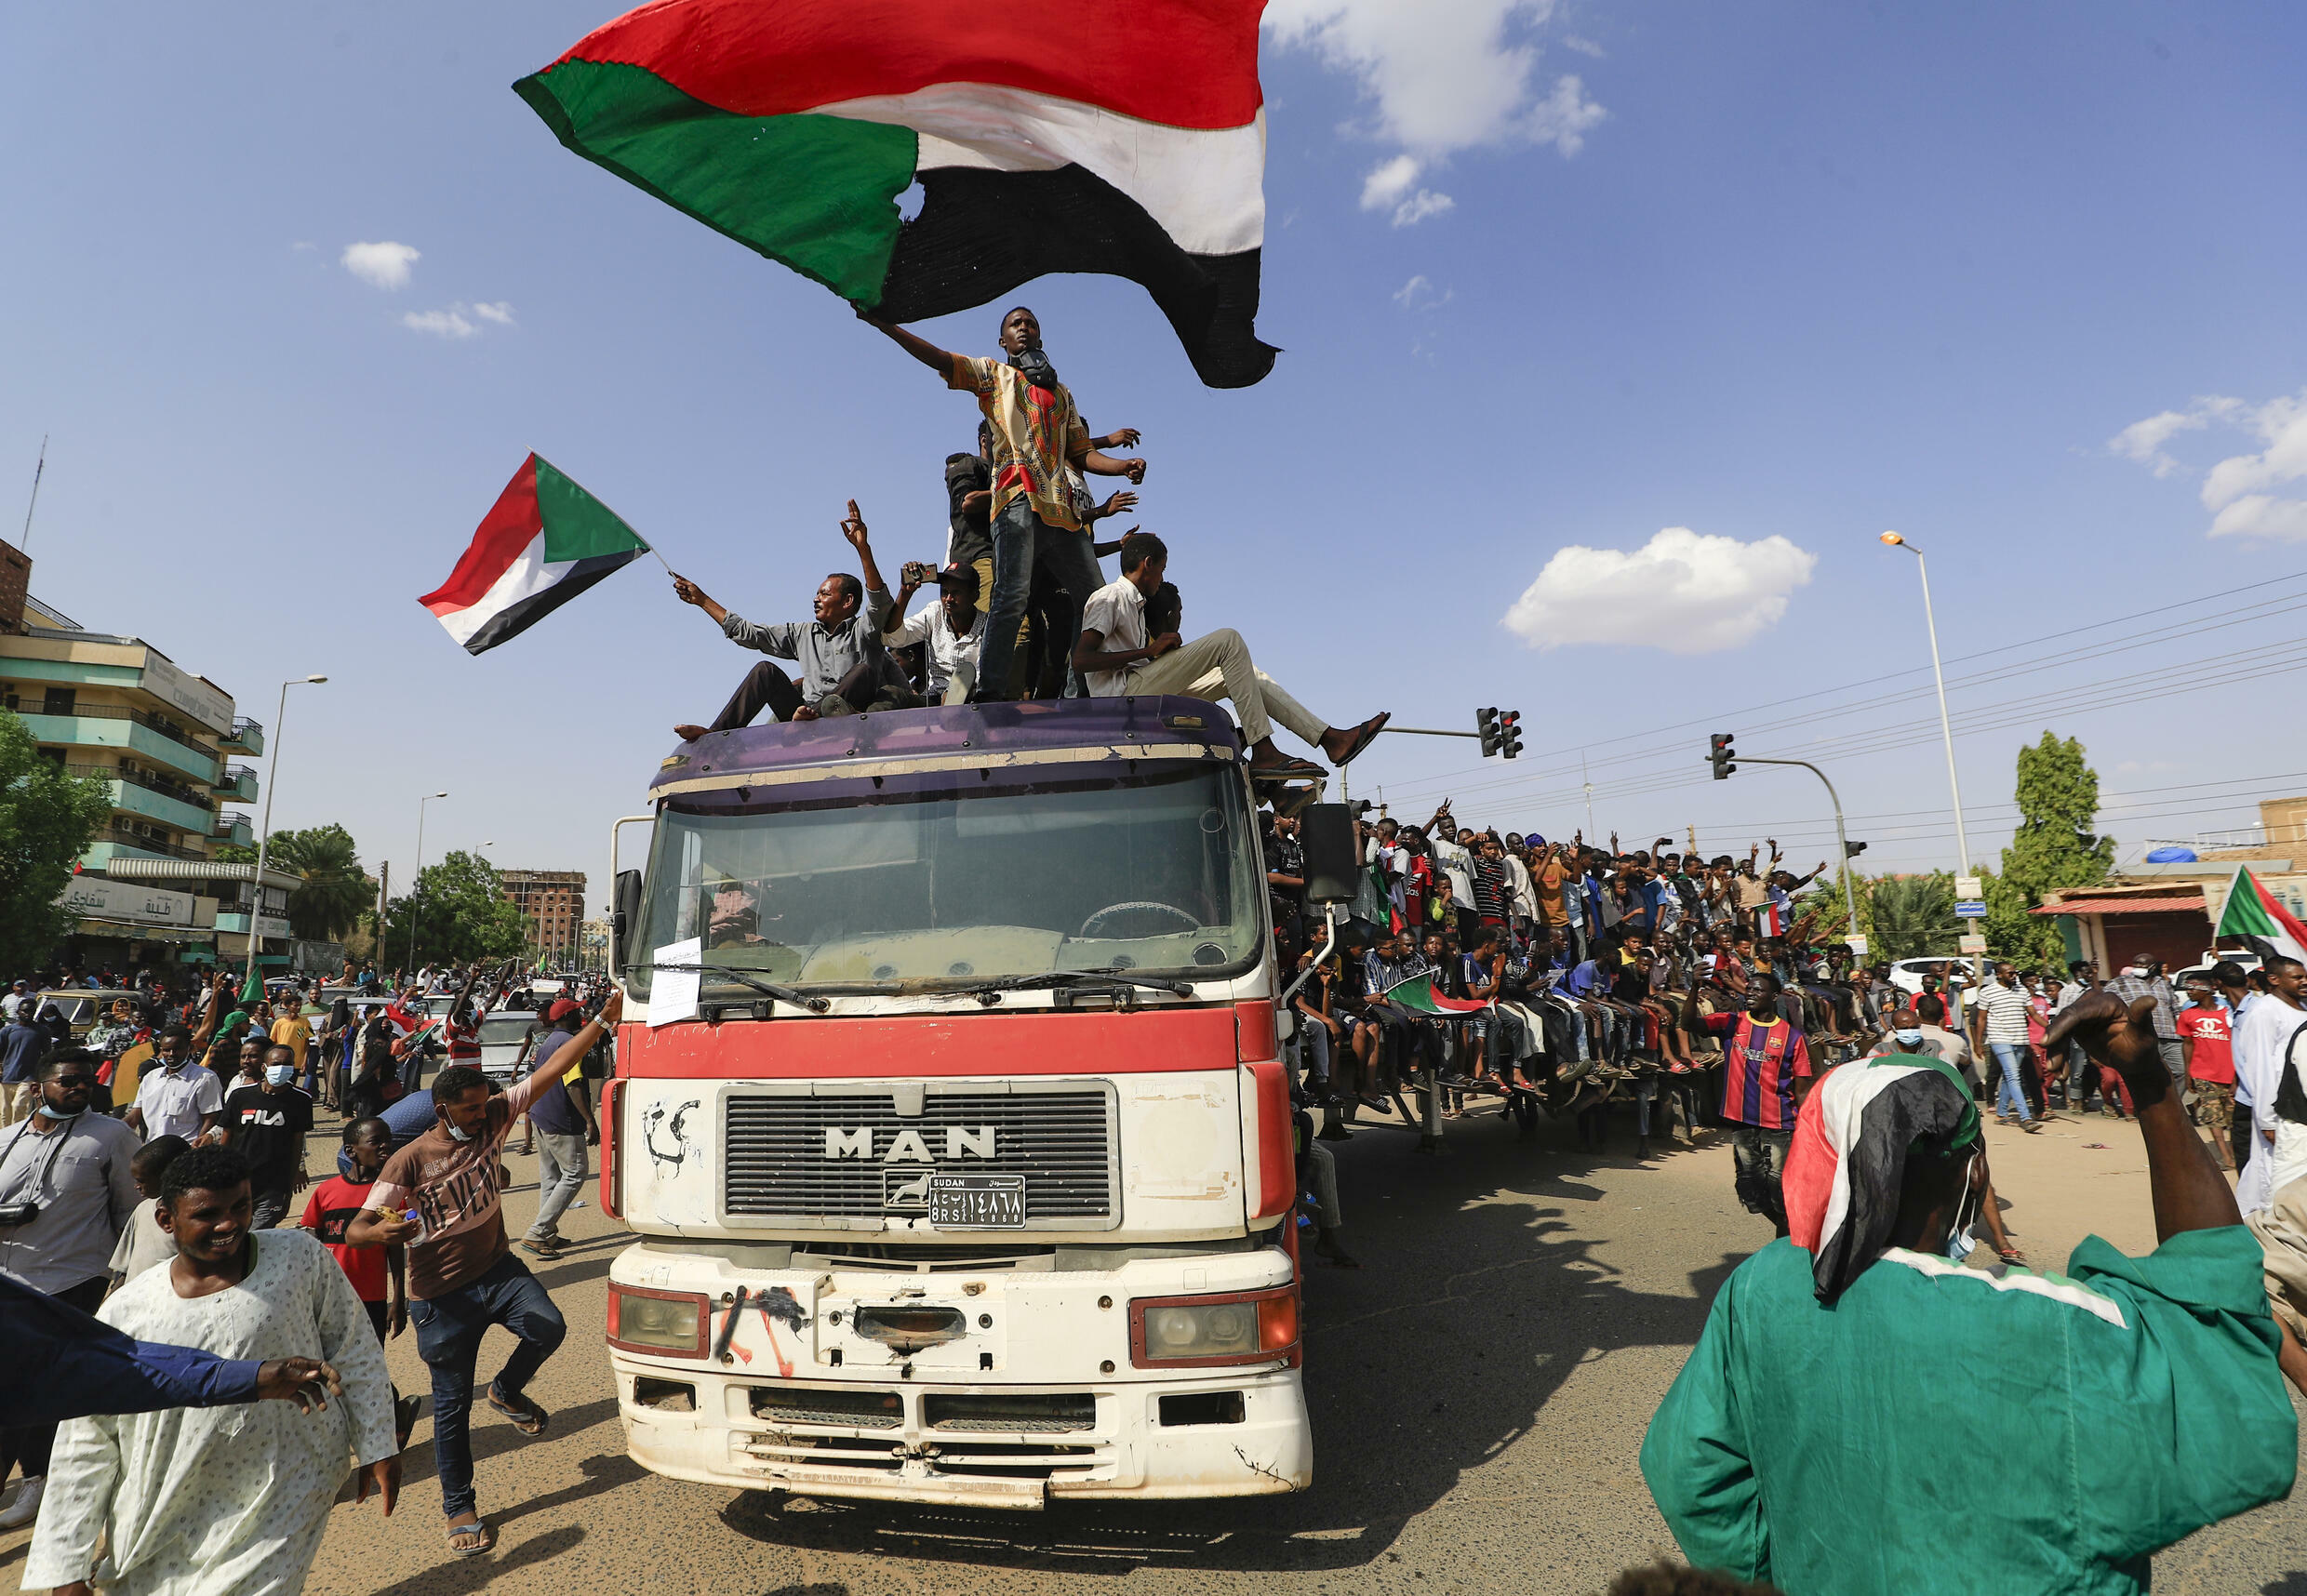 Sudanese demonstrators take to the streets of the capital Khartoum to demand the government's transition to civilian rule